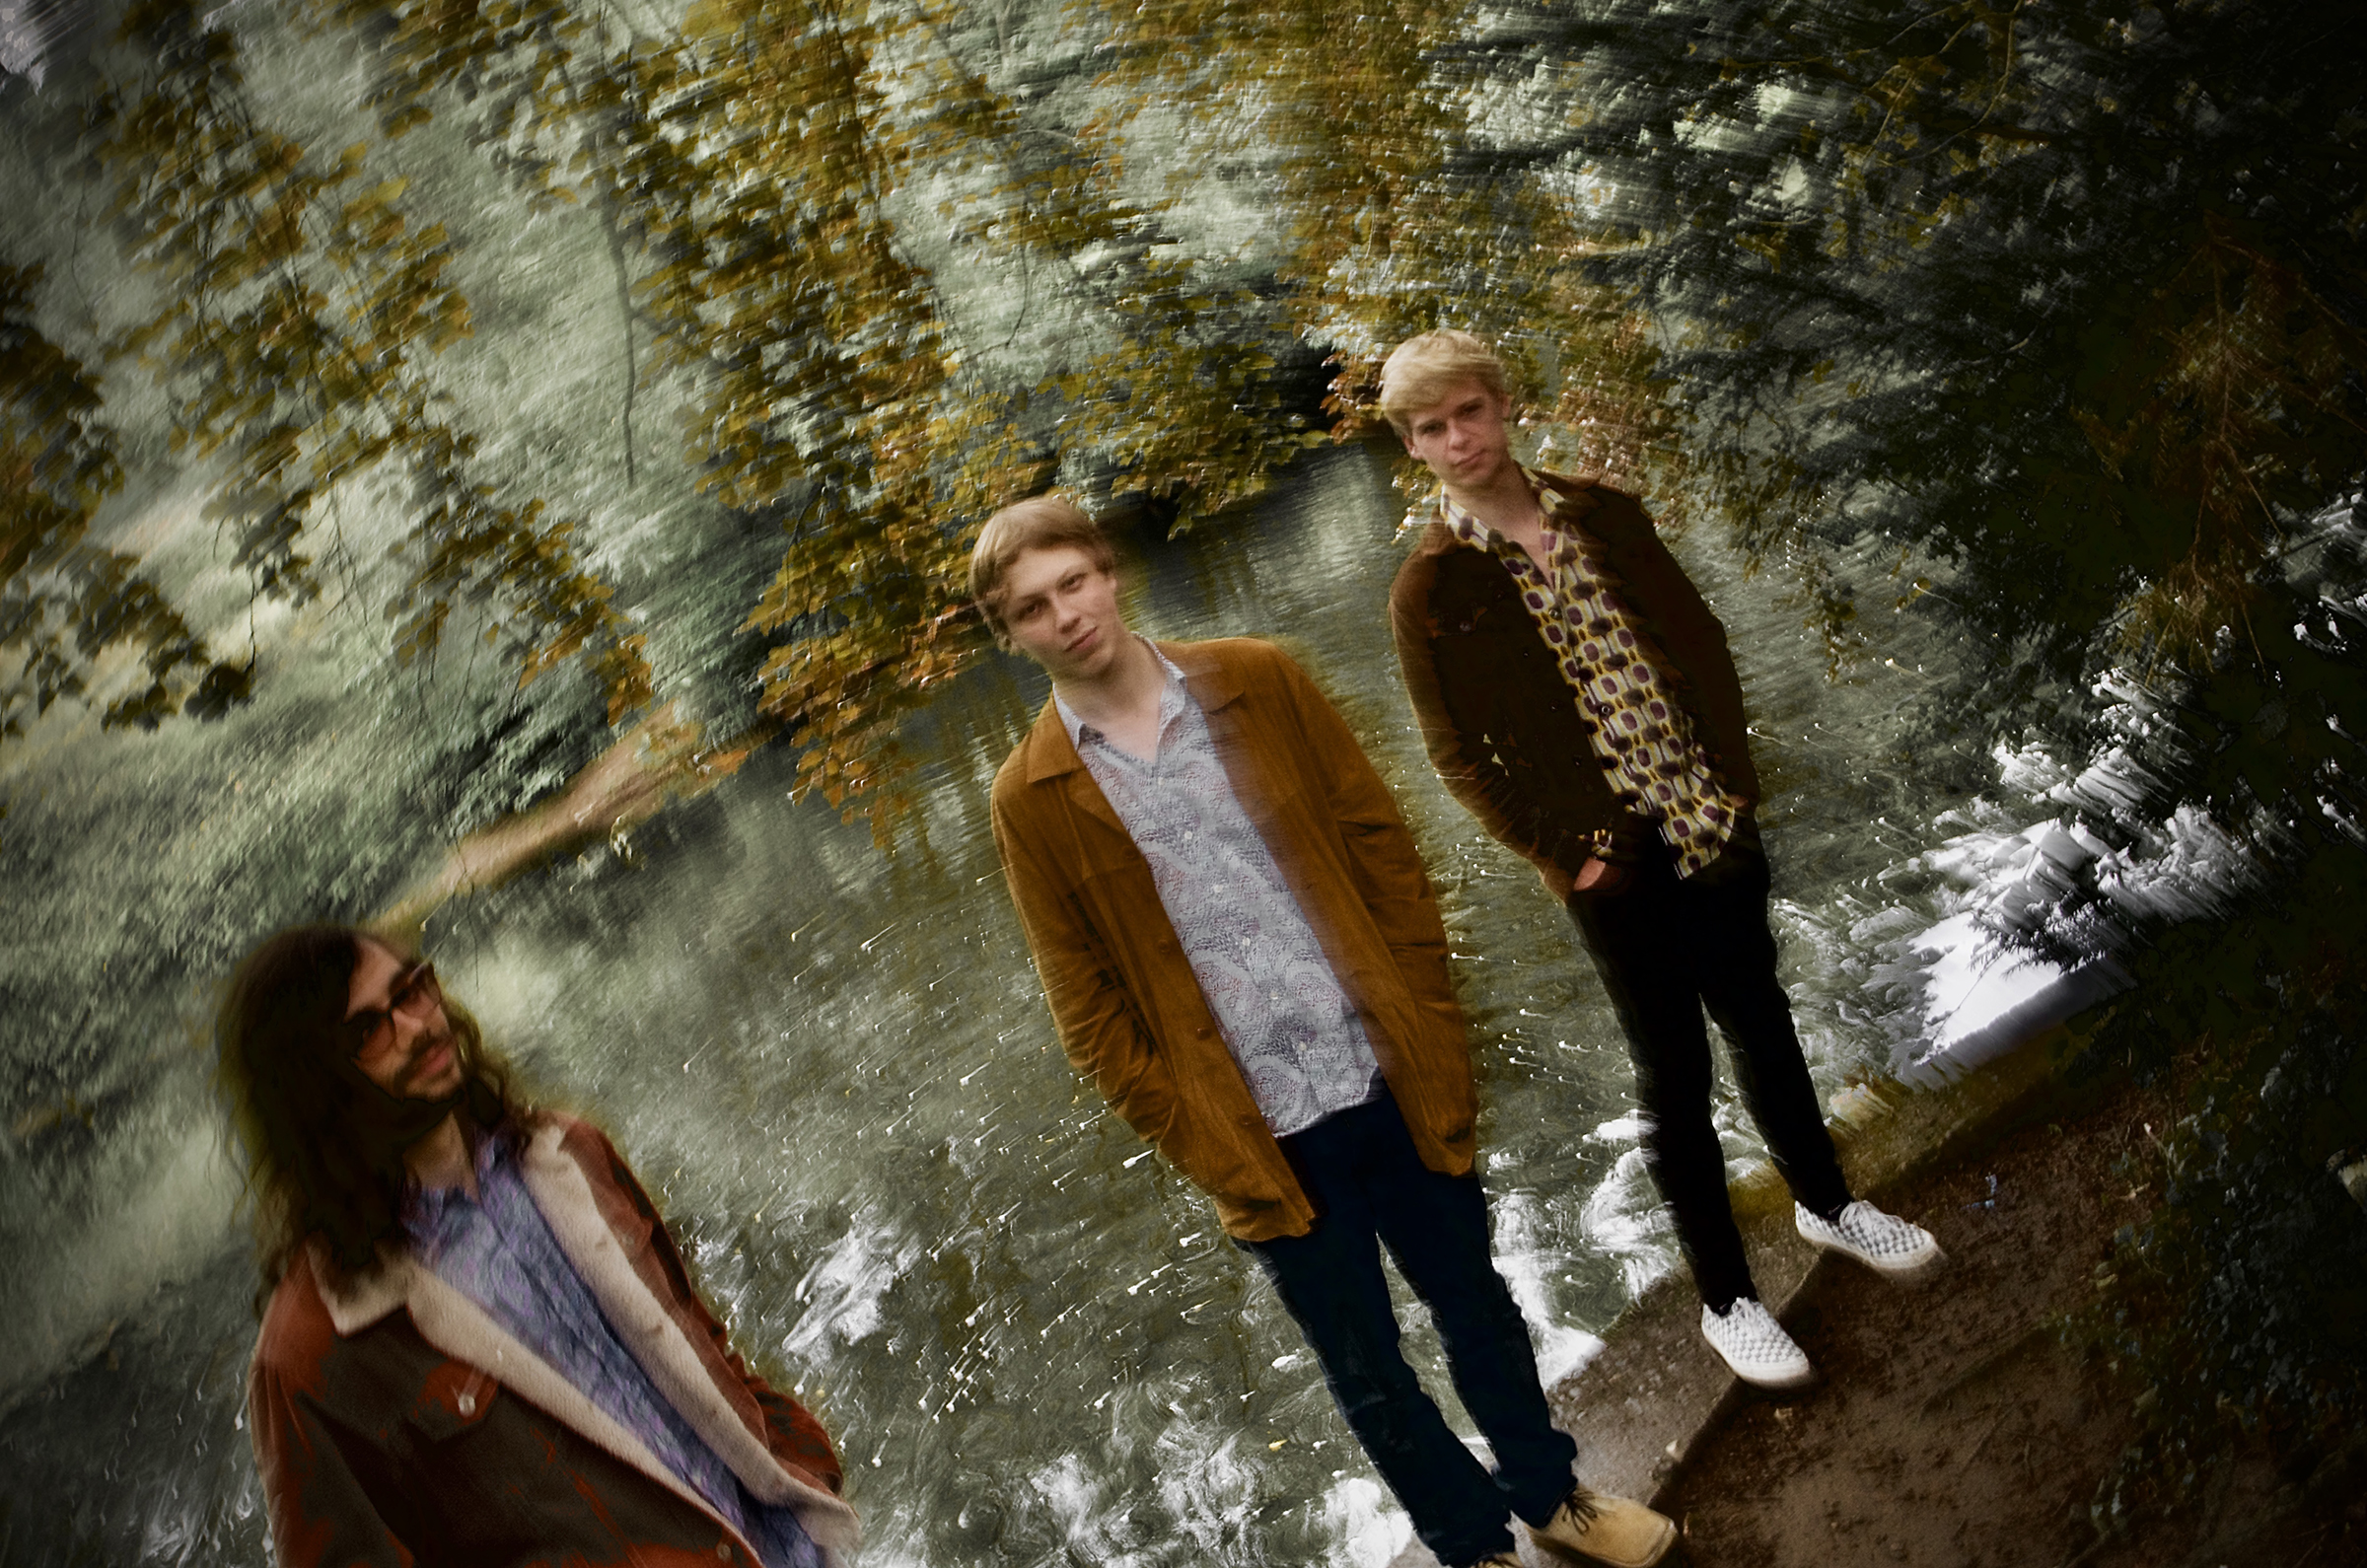 Leeds trio THE CALLS release their FALL INSIDE AGAIN EP on 20th November 1